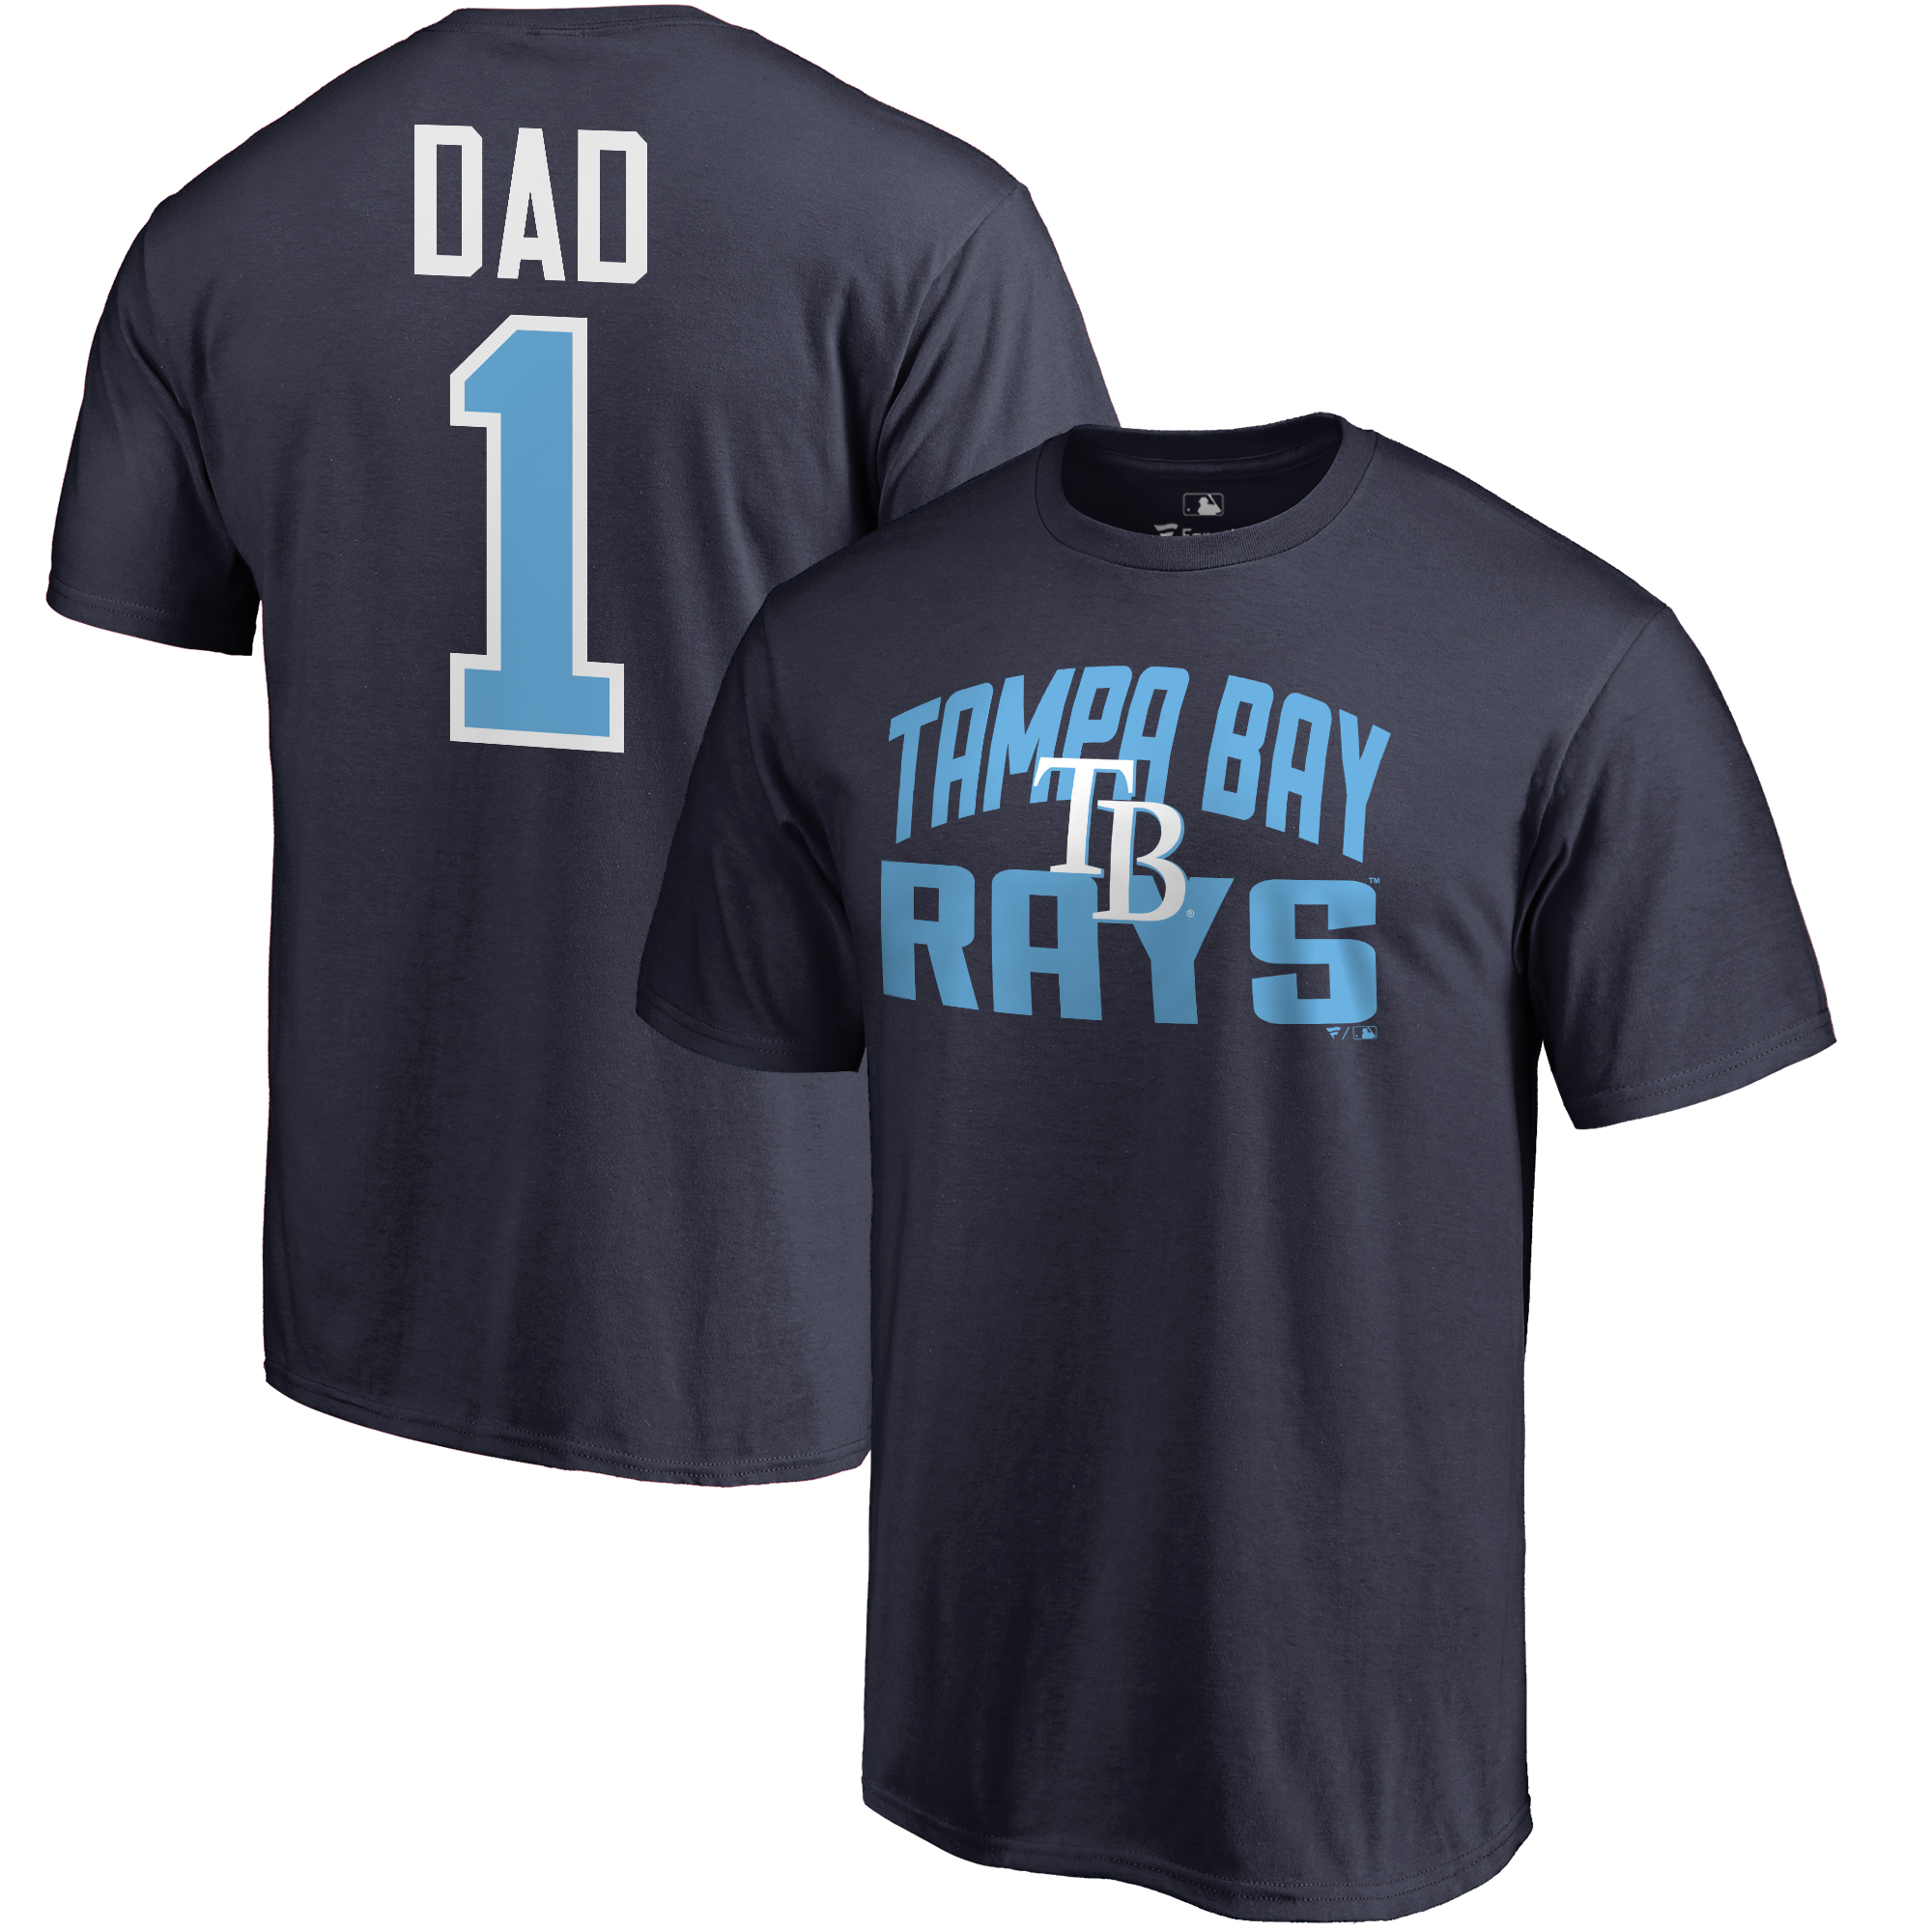 Tampa Bay Rays Fanatics Branded 2018 Father's Day Number 1 Dad T-Shirt - Navy